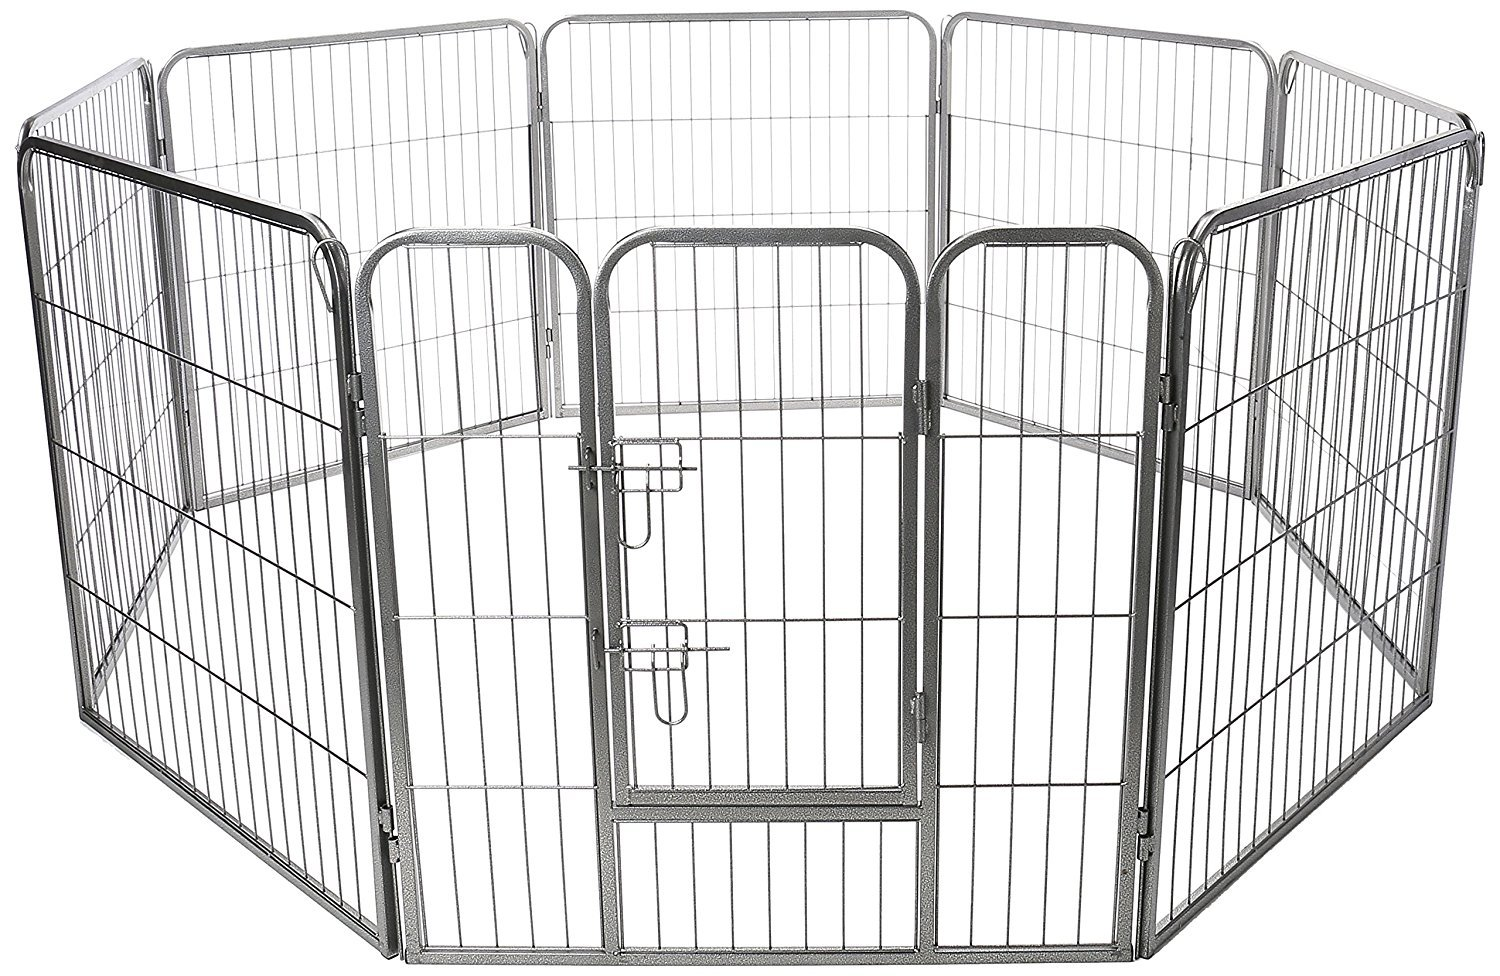 Paws and Pals Pet Exercise Pen Tube Gate w/ Door - (8 Panel Playpen) Heavy Duty Folding Metal Out-Door Fence - 24'' Playpen